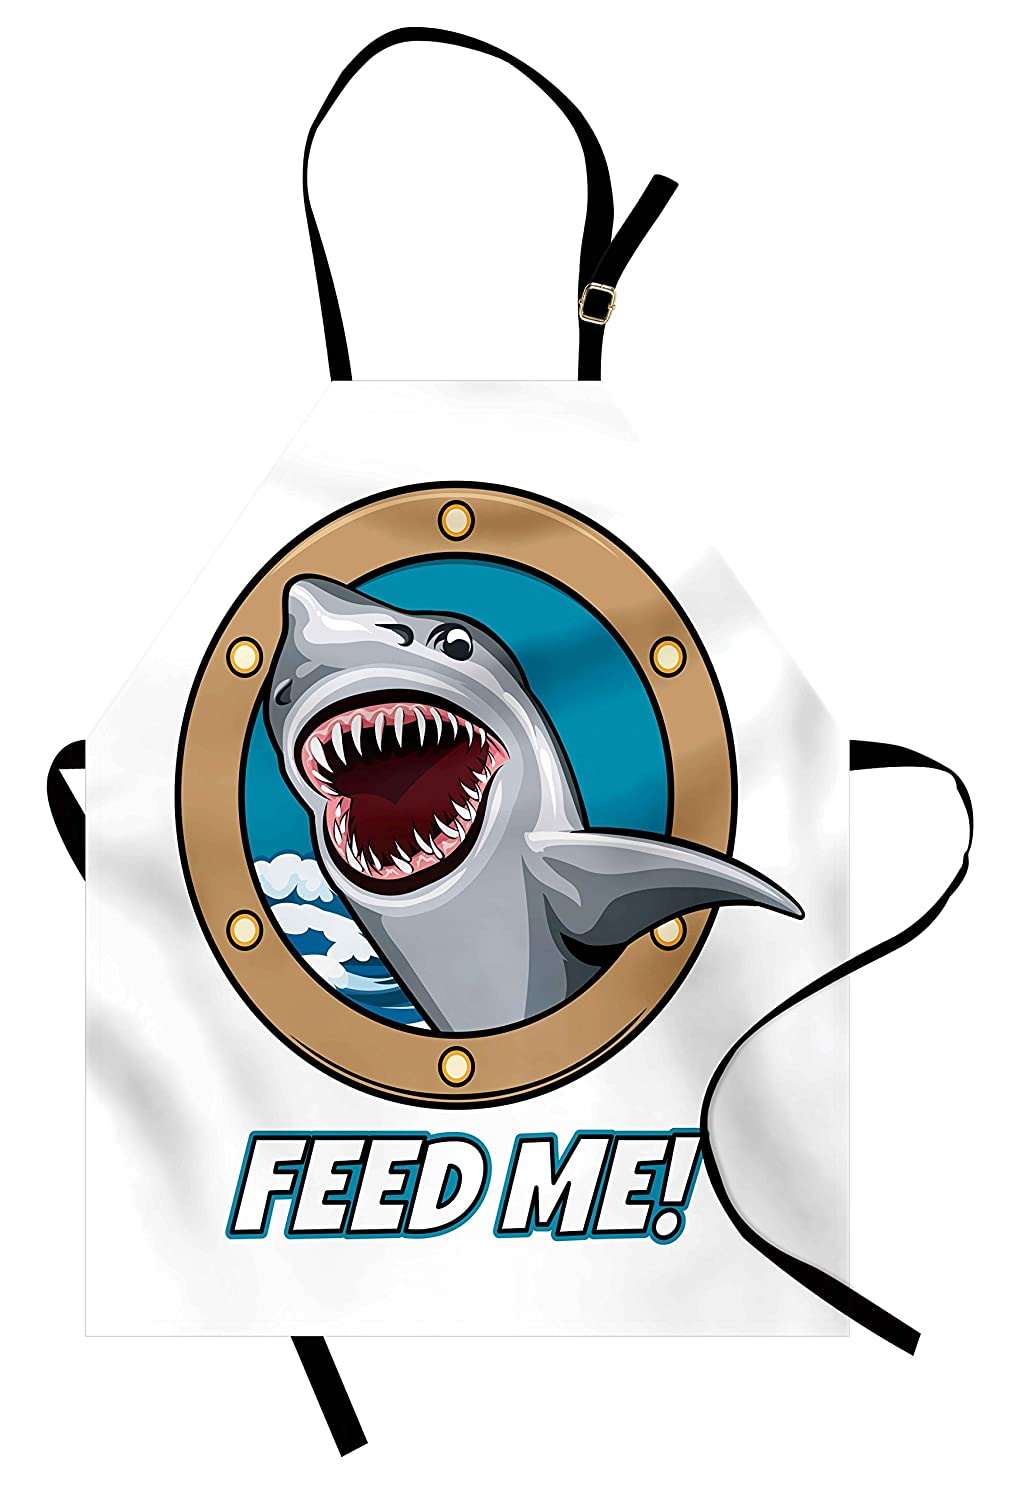 Ambesonne Shark Apron, Funny Vintage Feed Me Quote with Hungry Hound Shark Head in Ship Window Humor Print, Unisex Kitchen Bib Apron with Adjustable Neck for Cooking Baking Gardening, Multicolor